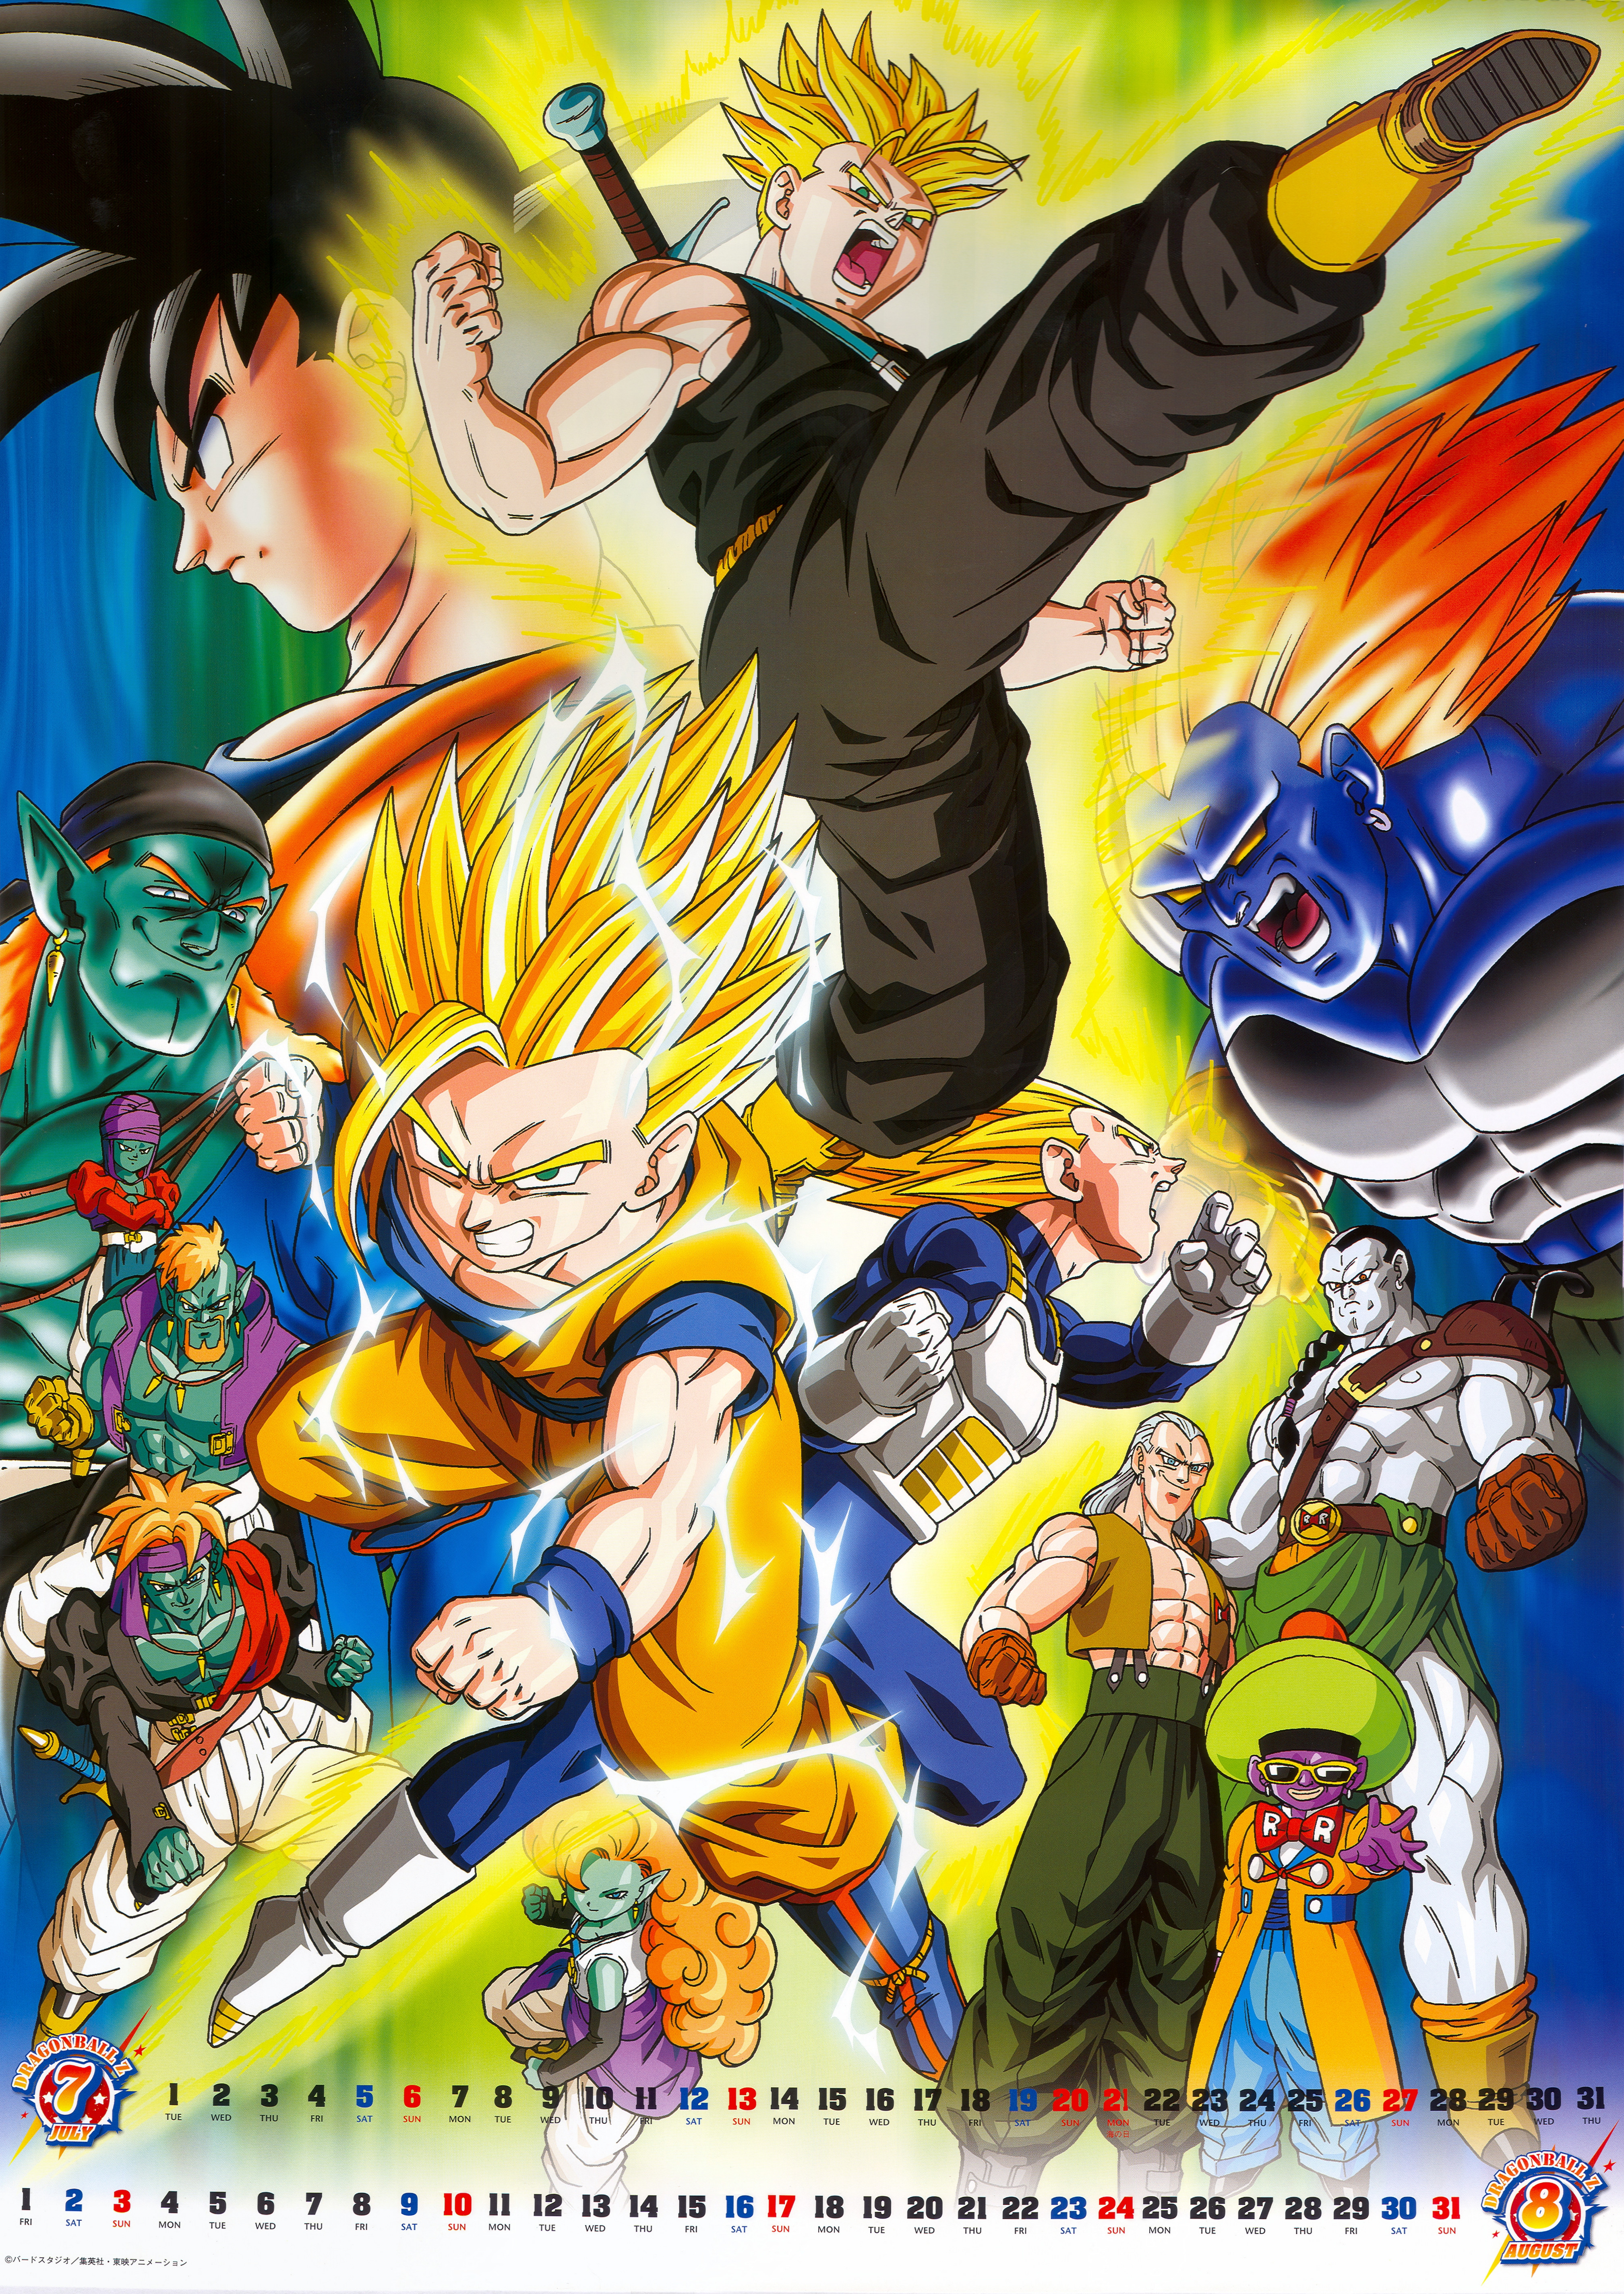 07-08 Super Android 13 & Bojack Unbound (Dragon Ball Z Movies 2008 Calendar)